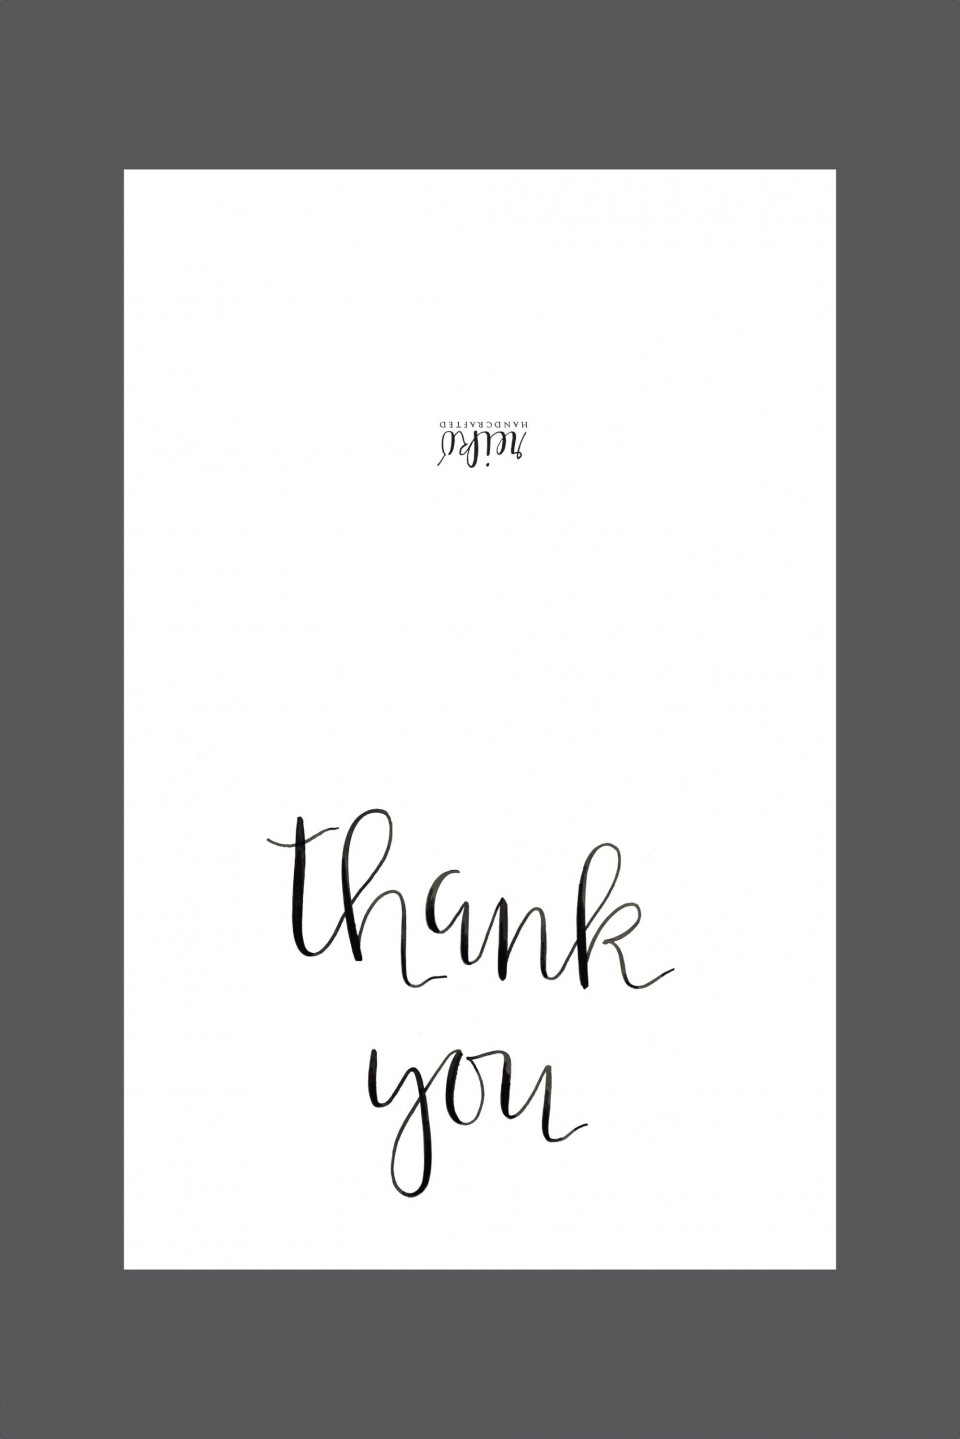 006 Shocking Thank You Note Template Free Printable Design 960